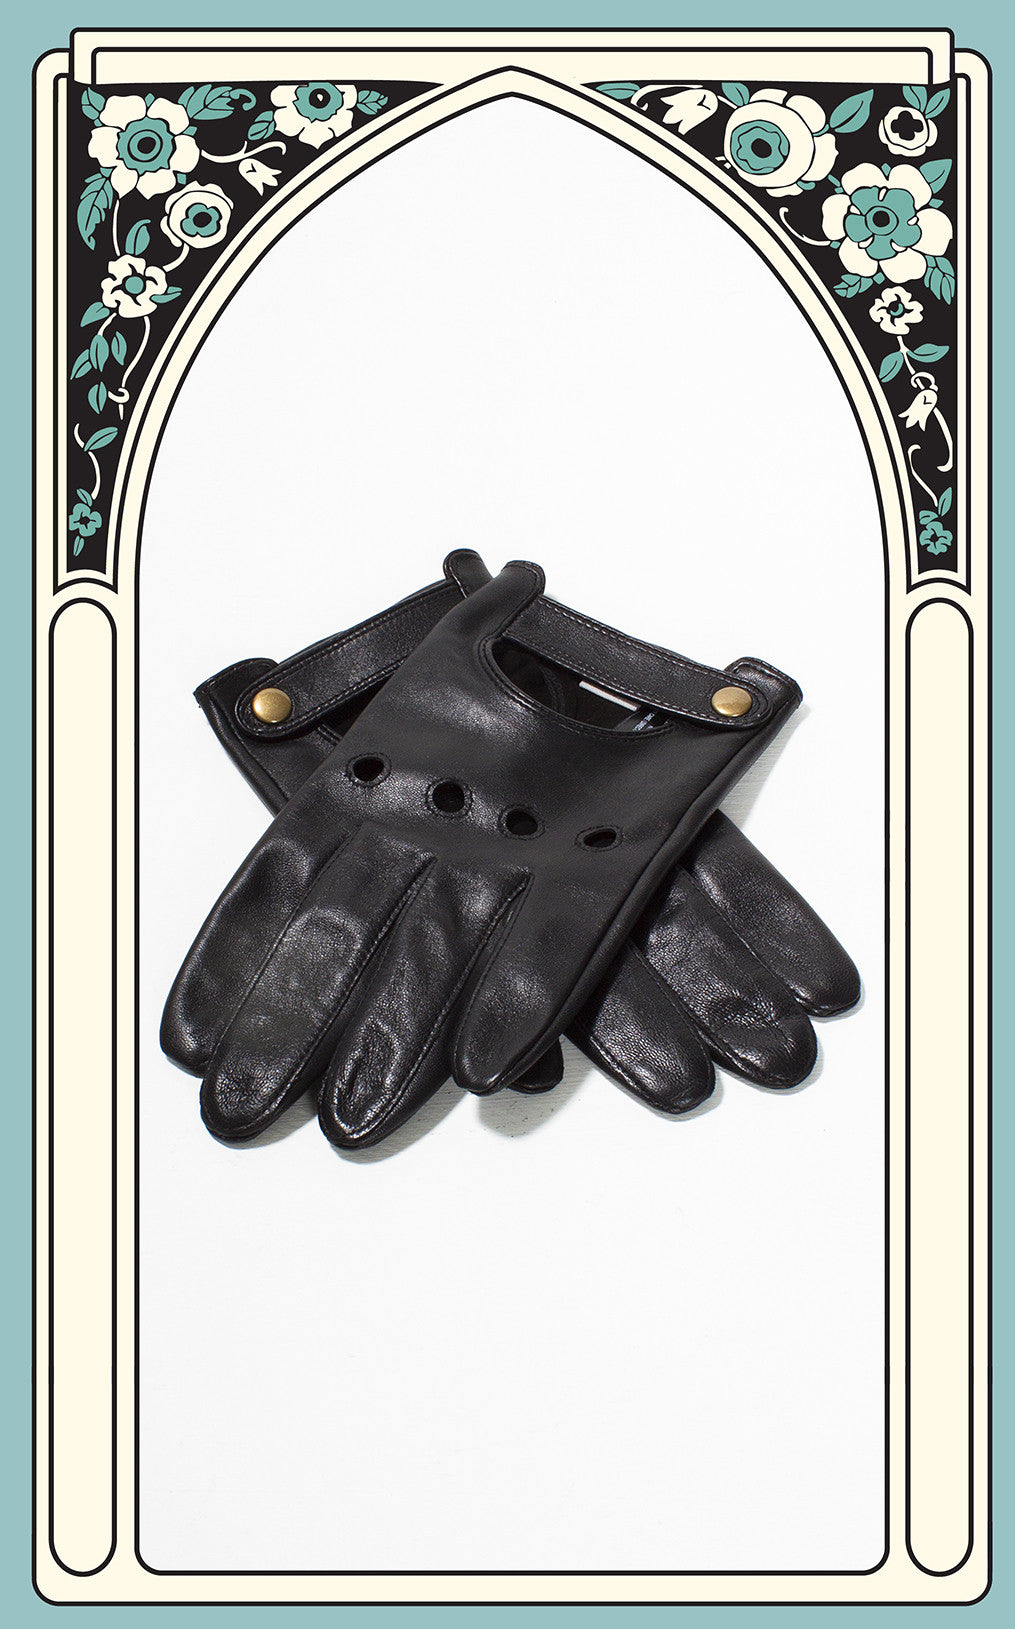 Men's Reproduction Black Leather Driving Gloves